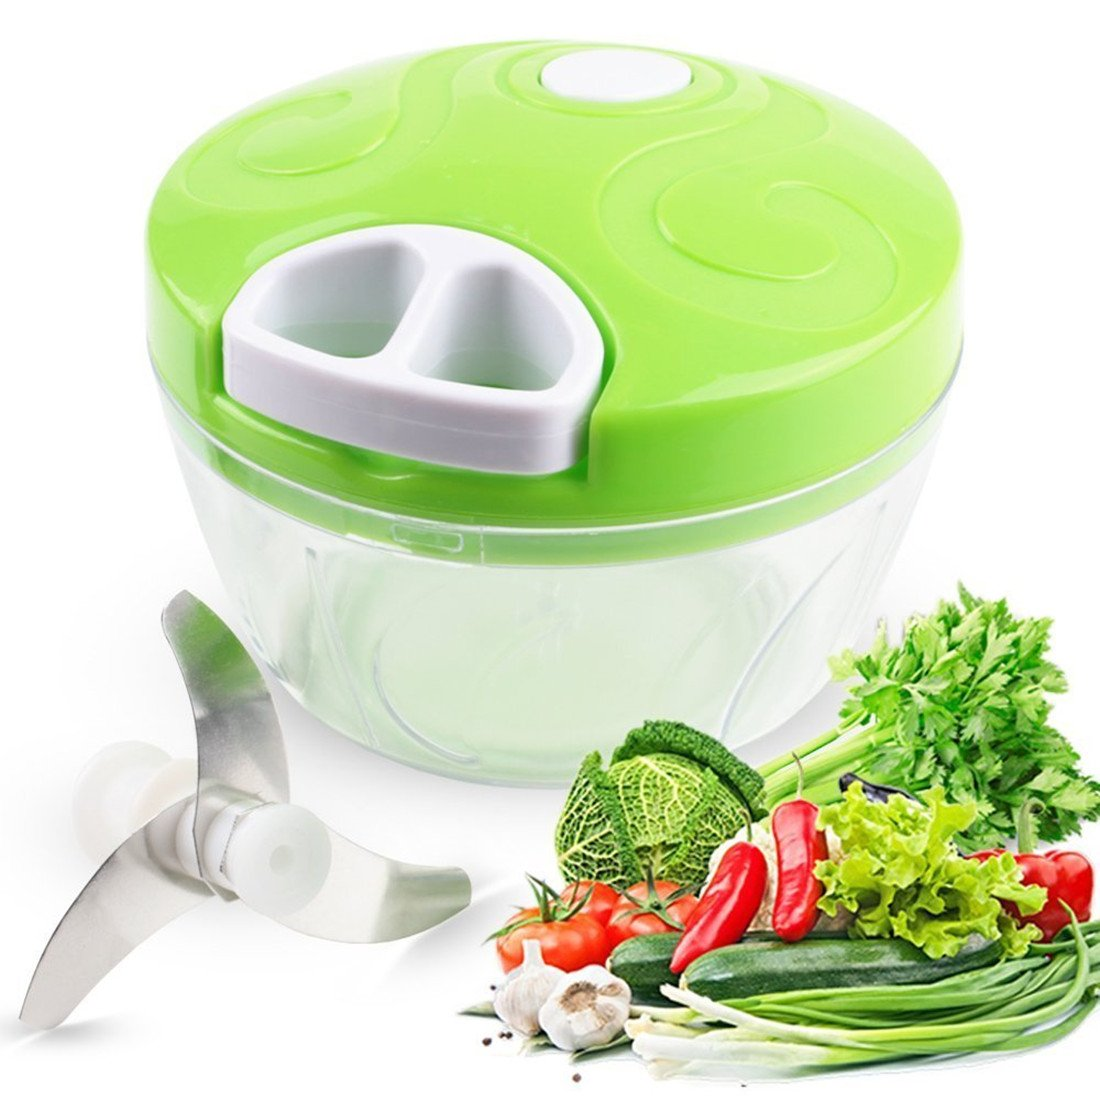 Greenlife Multipurpose Kitchenware, Manual Food Chopper Stainless Steel Slicer/Mincer Hand Pull Blender for Salsa/Fruits/Vegetables (2 Cup) XQH